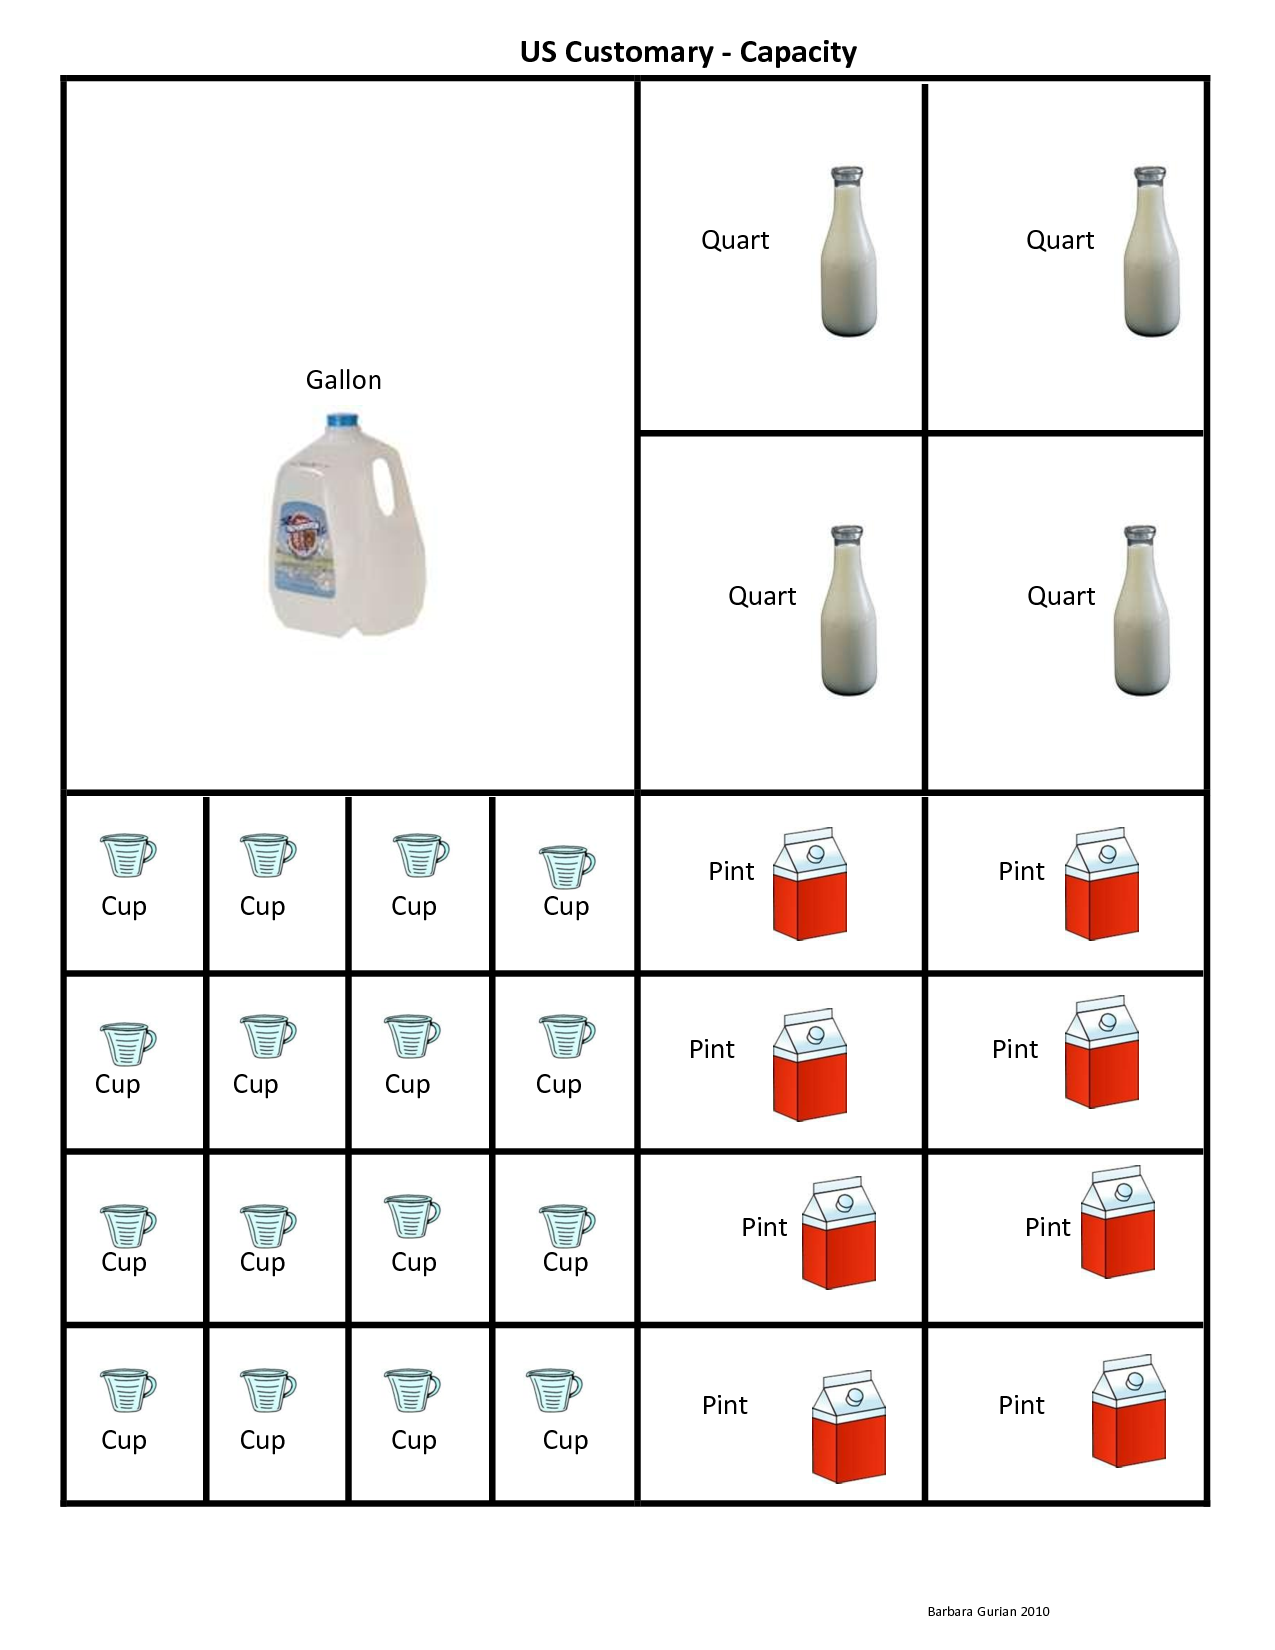 Cup pint quart gallon conversion chart clipart math education cup pint quart gallon conversion chart clipart nvjuhfo Images